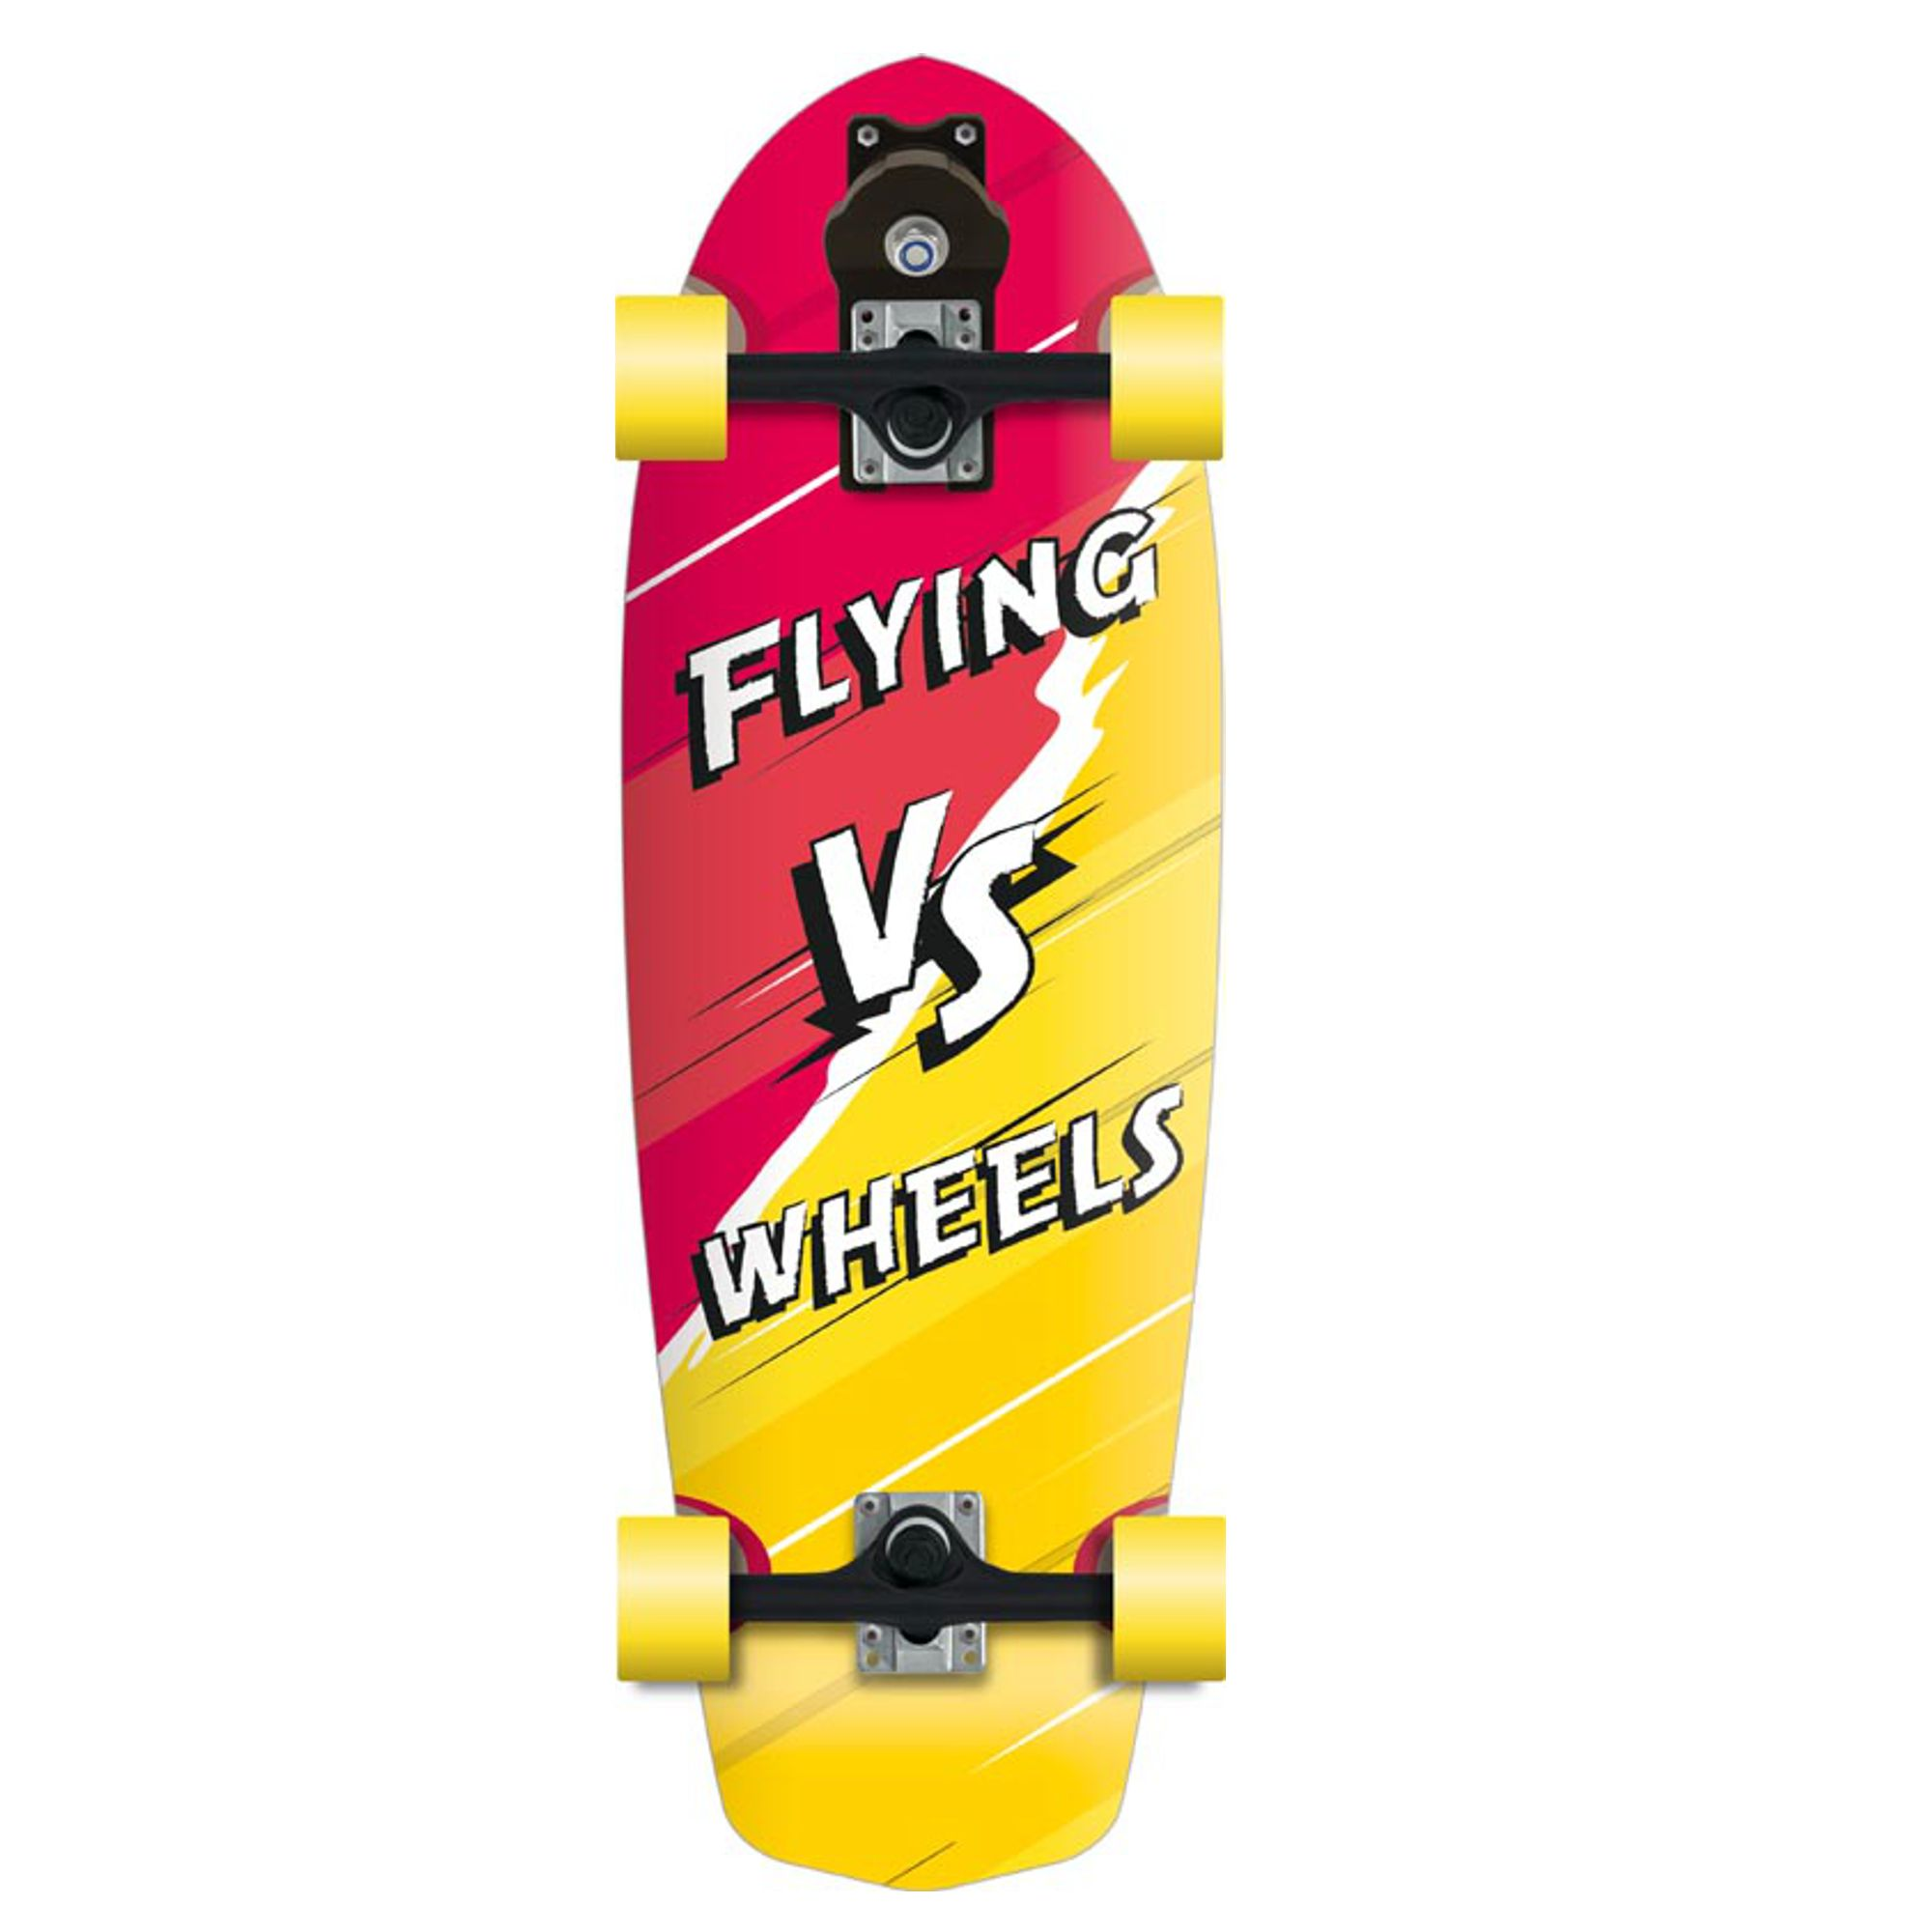 FLYING WHEELS Surf Skateboard 29 Versus